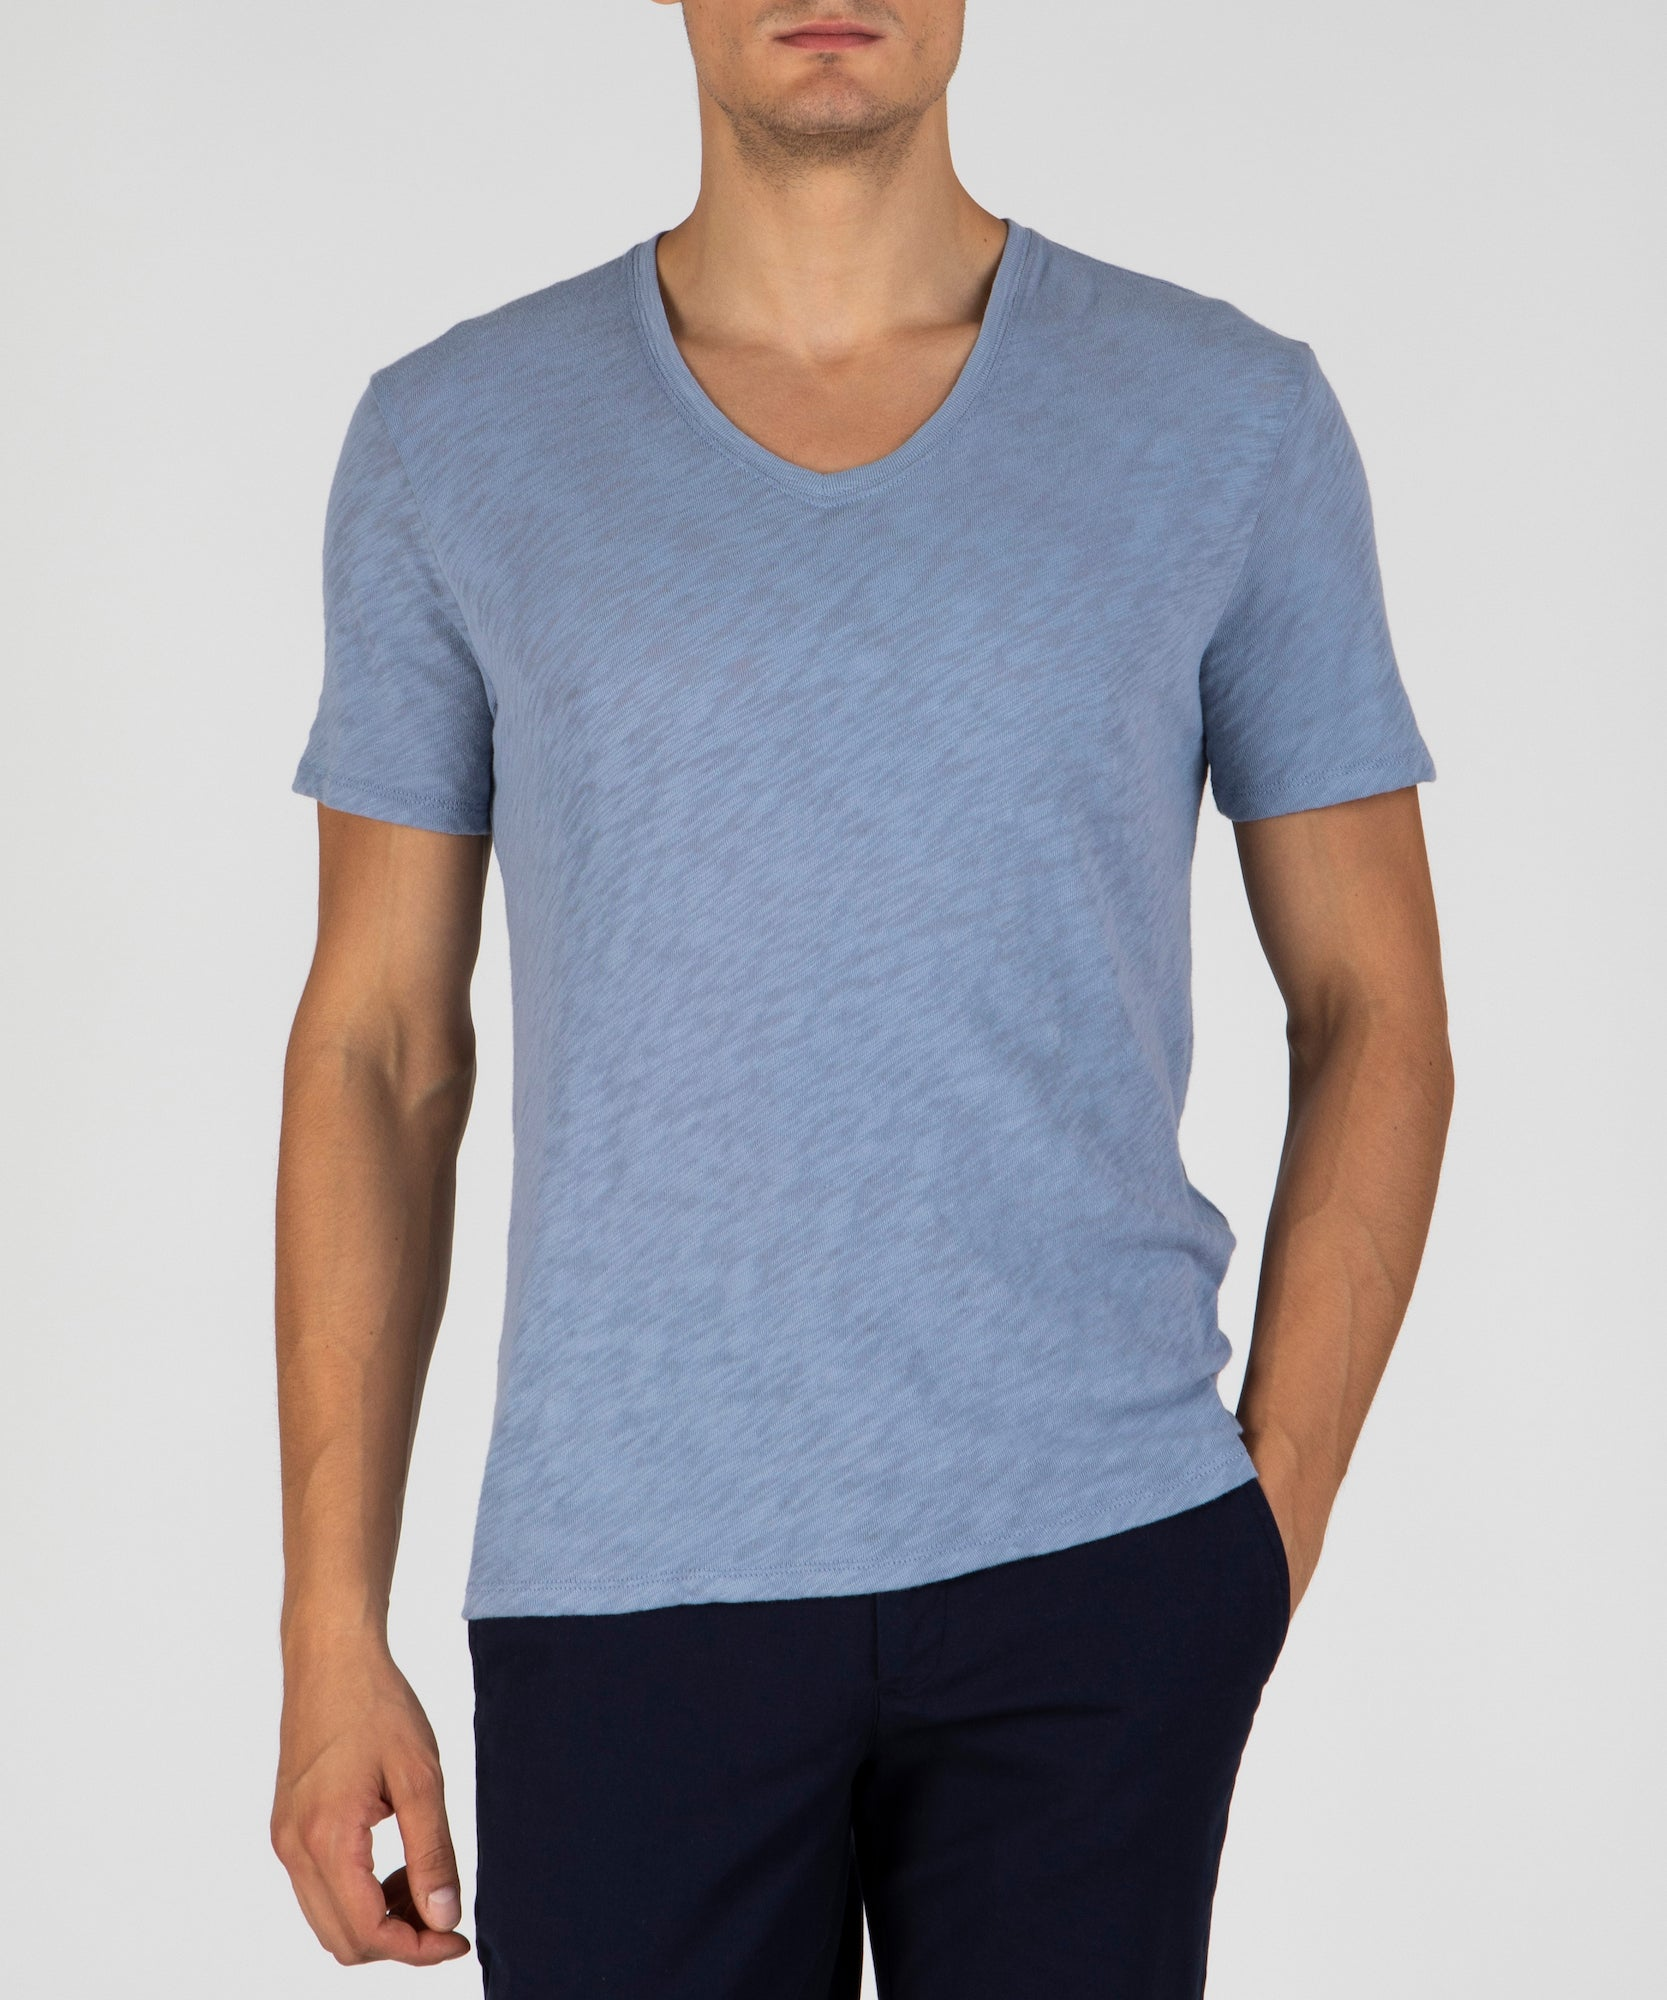 Stonewash Slub Jersey V-Neck Tee - Men's Cotton Short Sleeve Tee by ATM Anthony Thomas Melillo